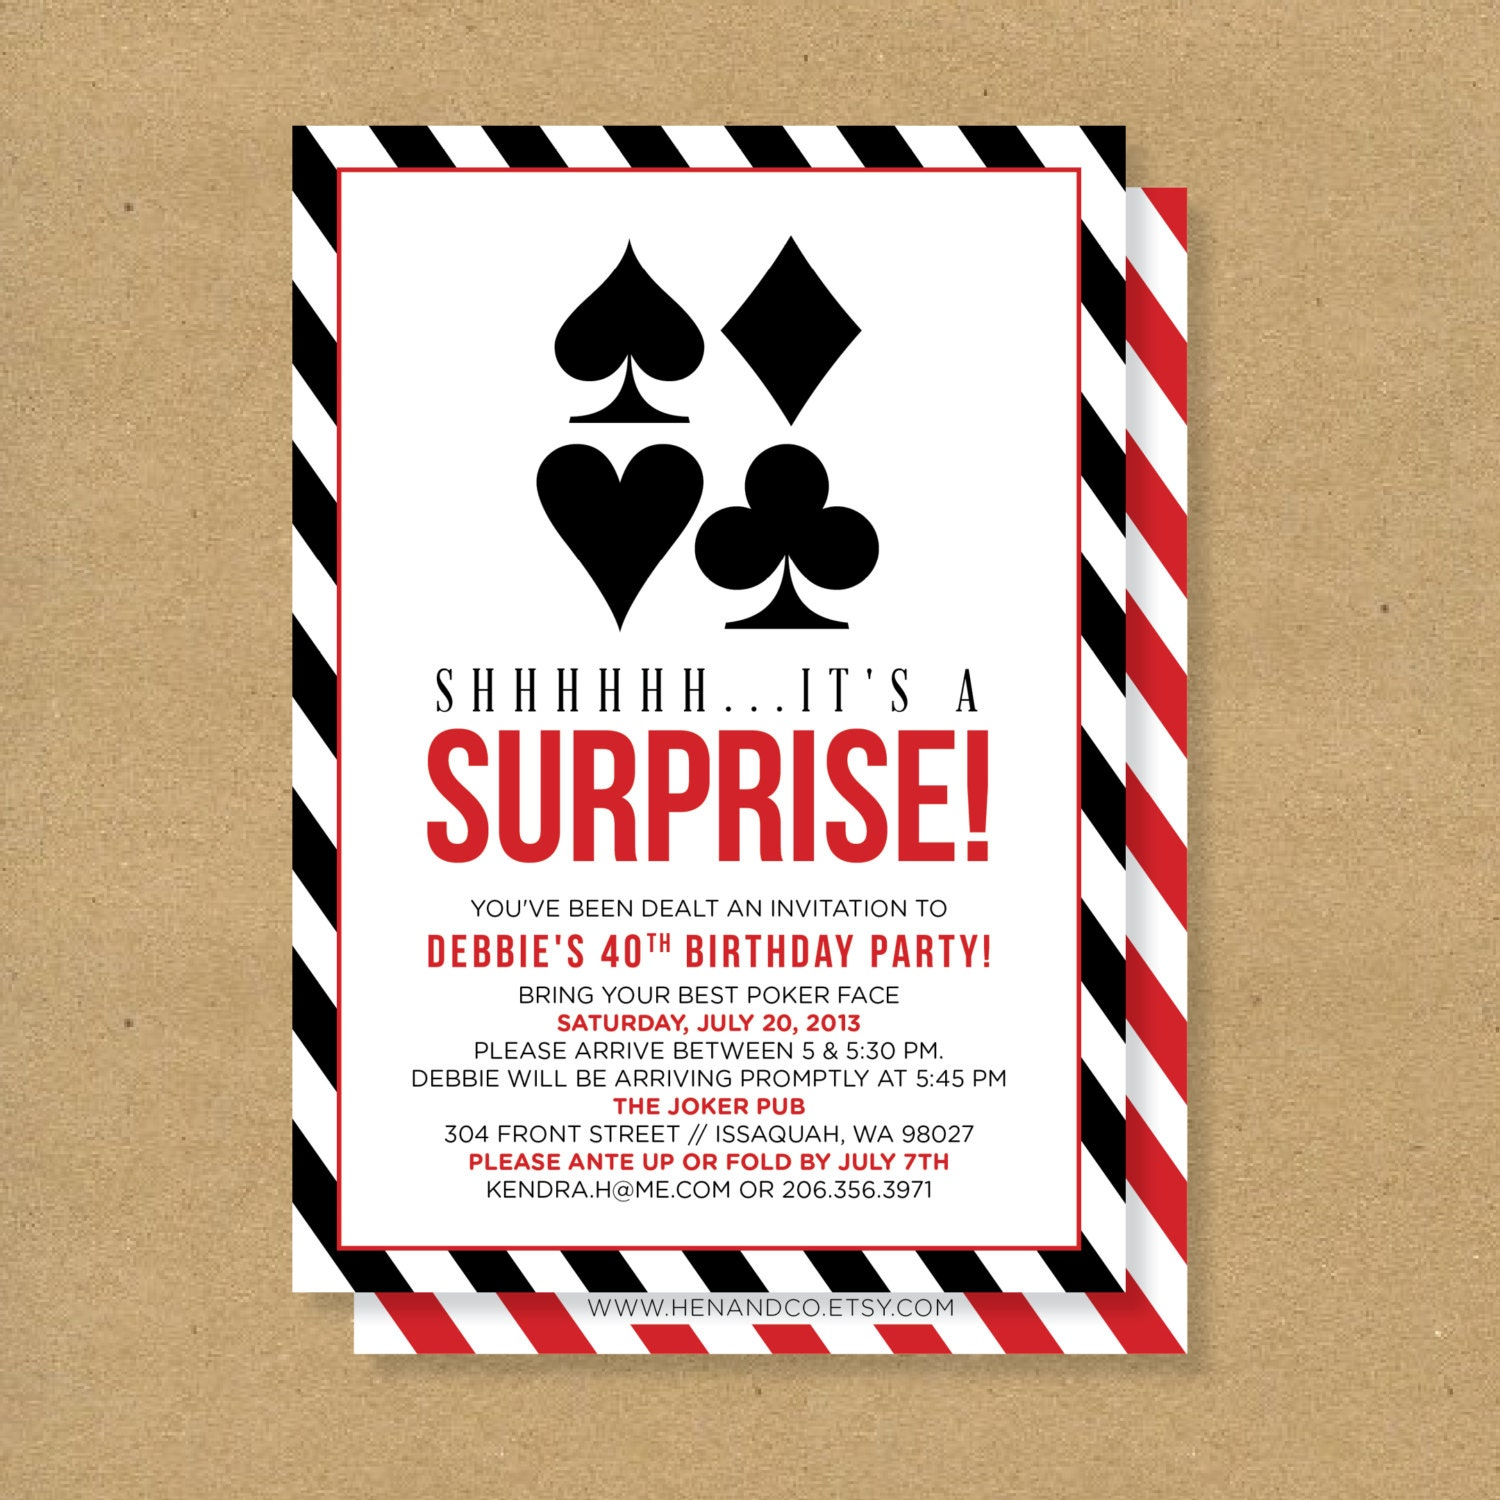 50Th Birthday Invitations Free is amazing invitations example